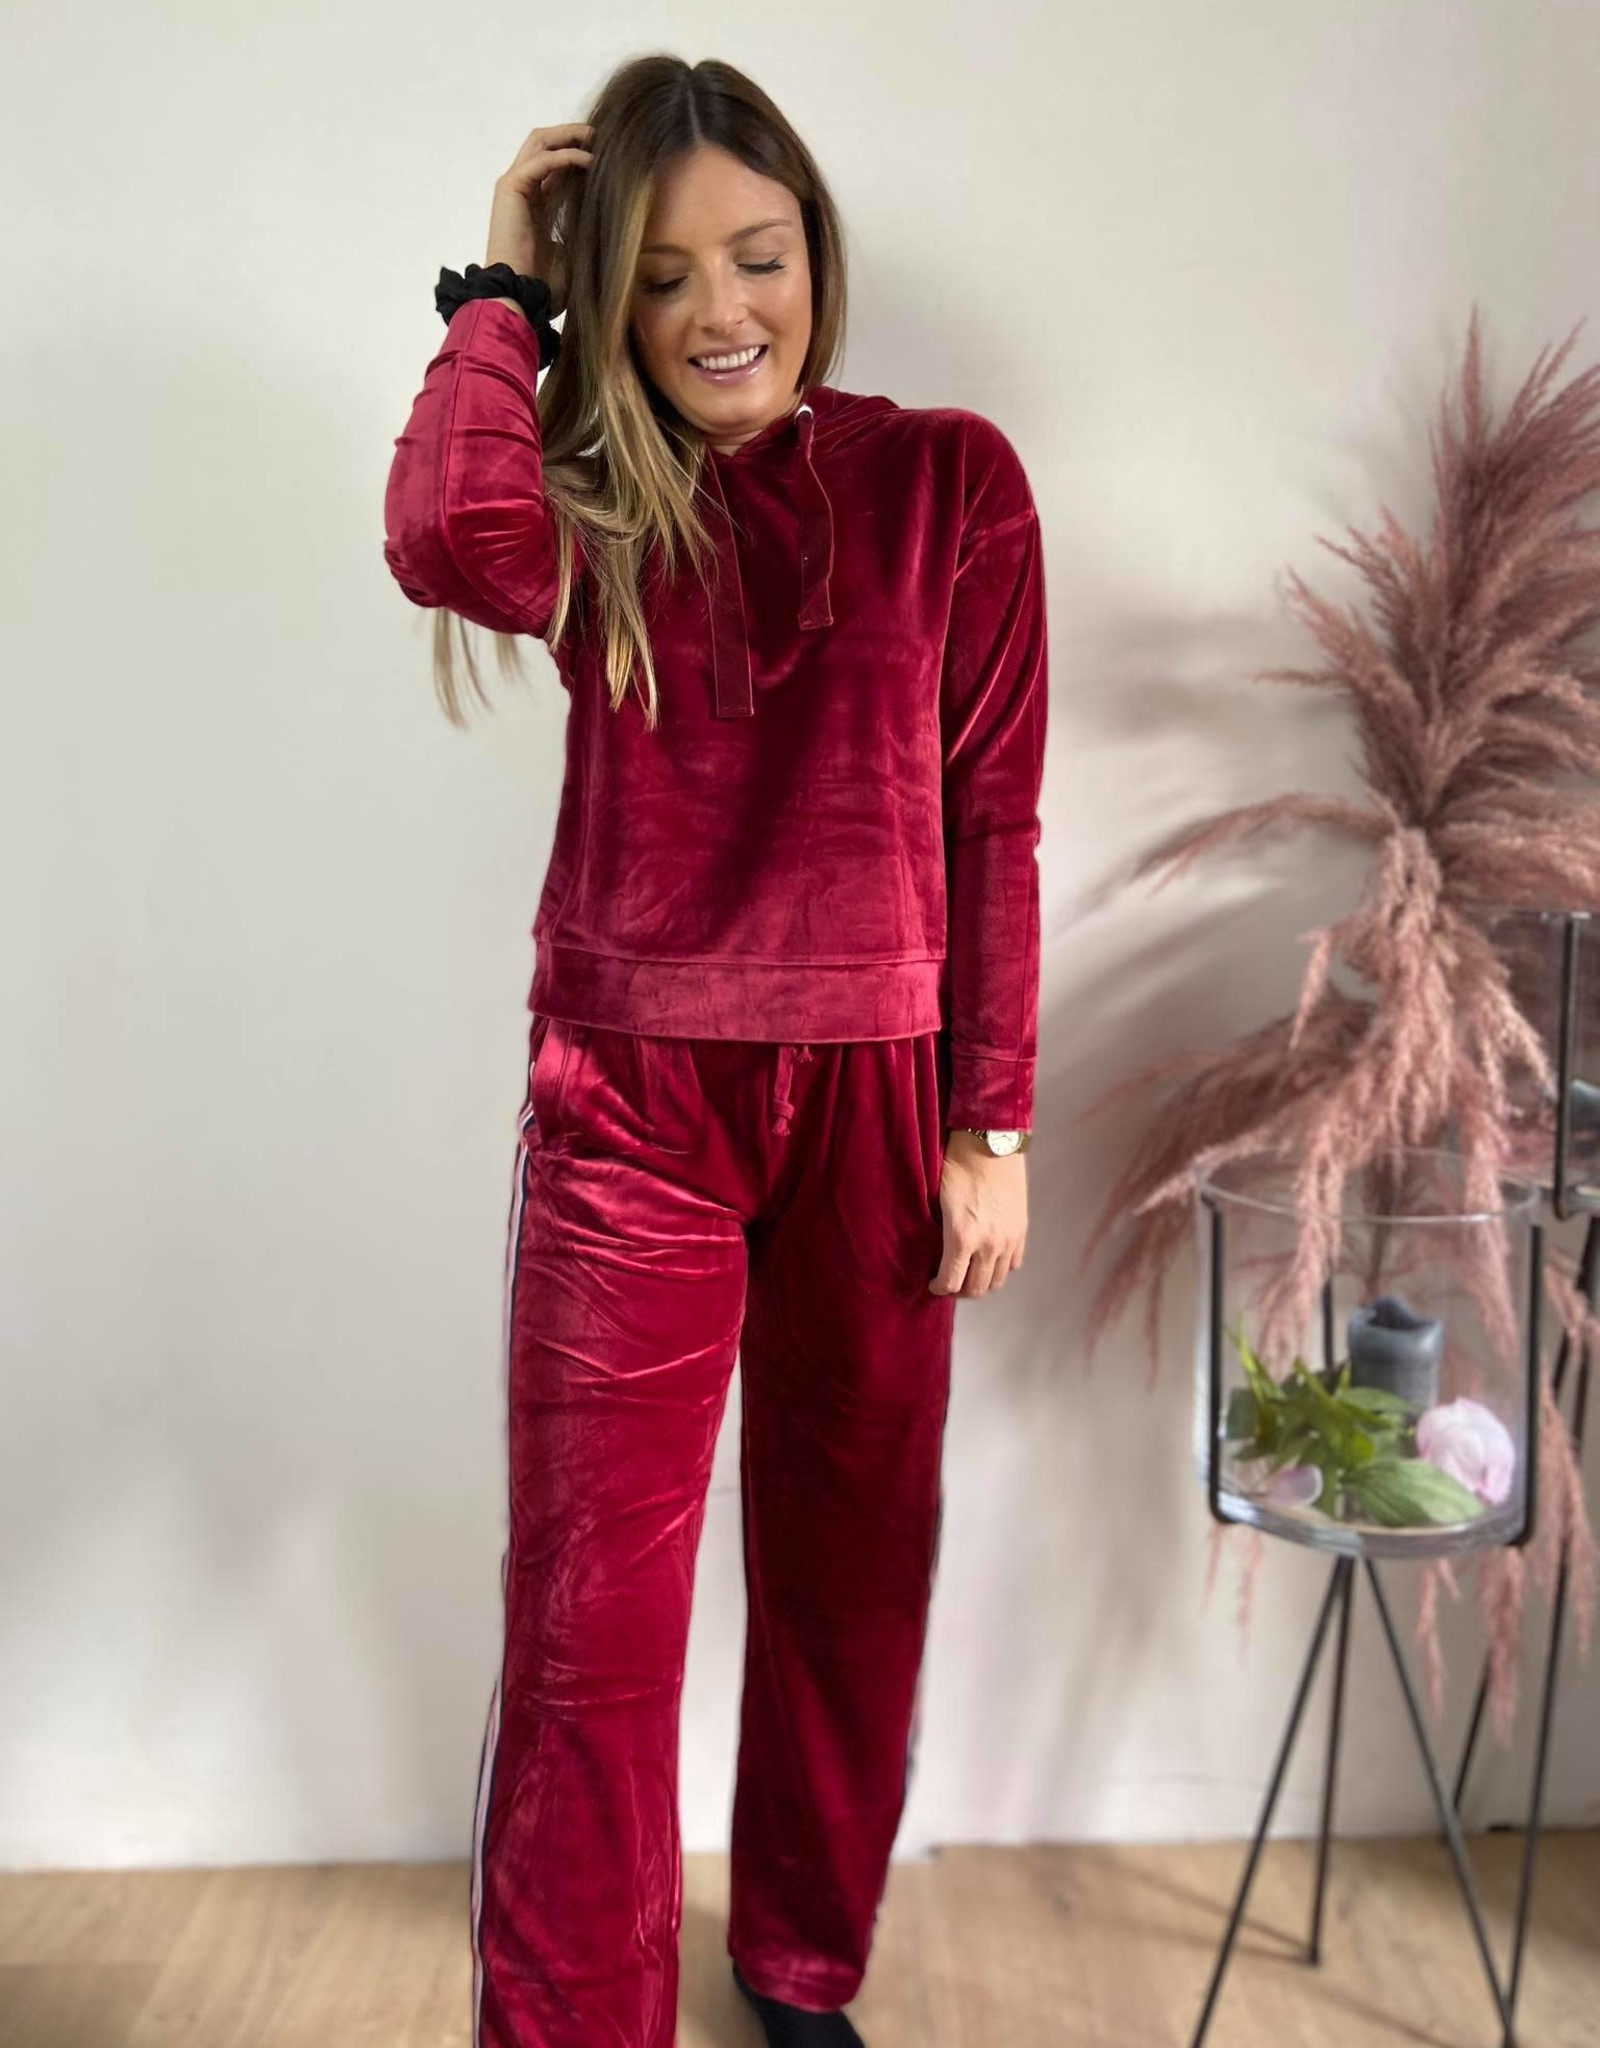 jogging set velvet bordeaux Celina